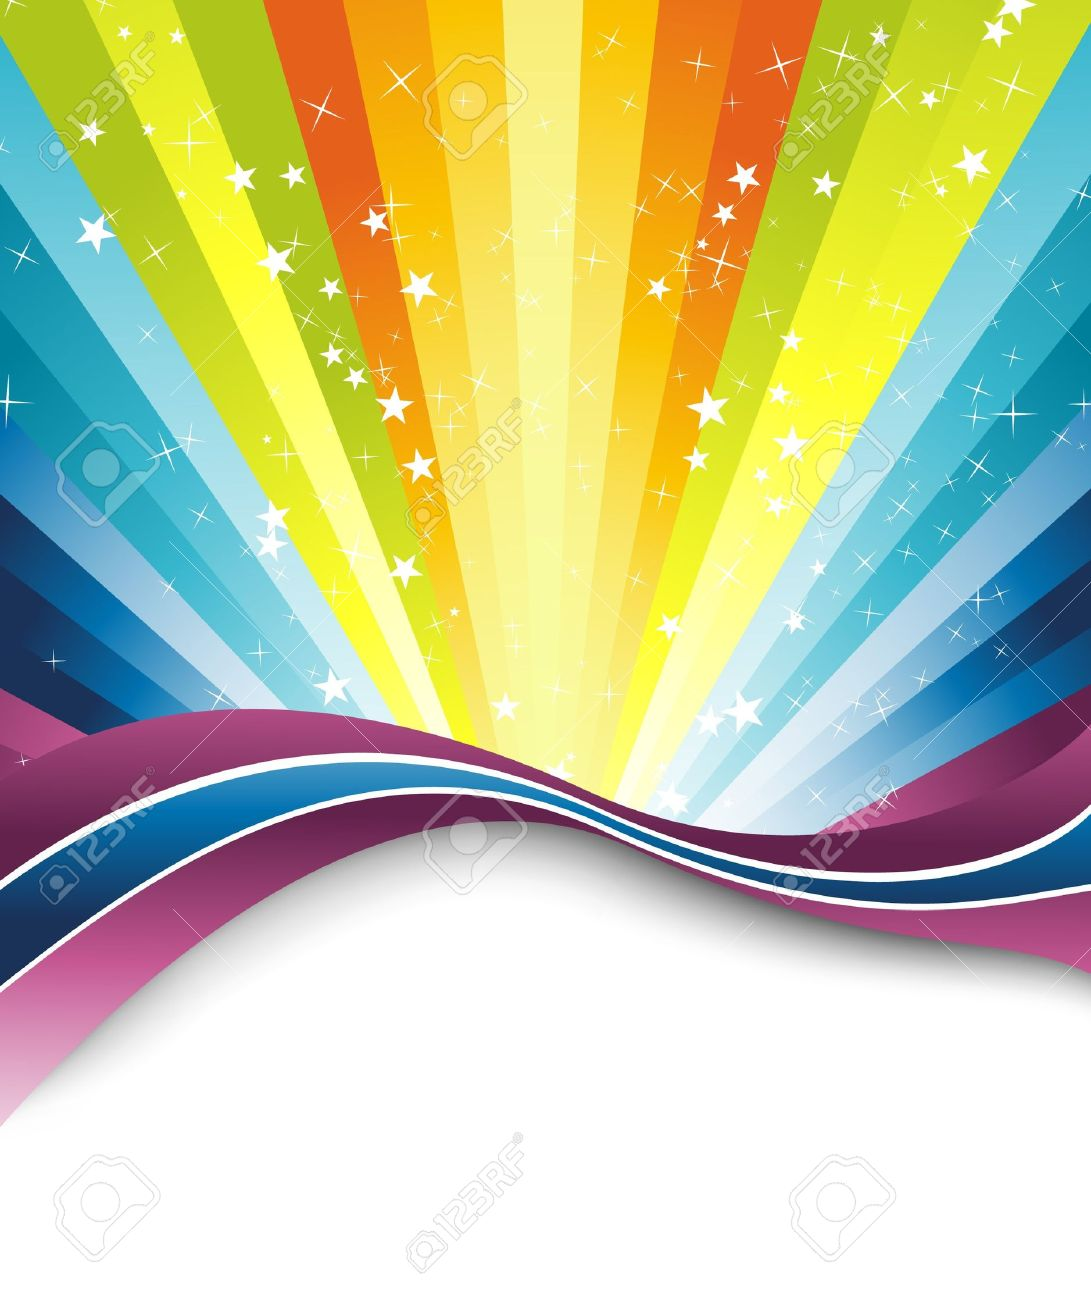 colorful rainbow banner template illustration royalty free cliparts